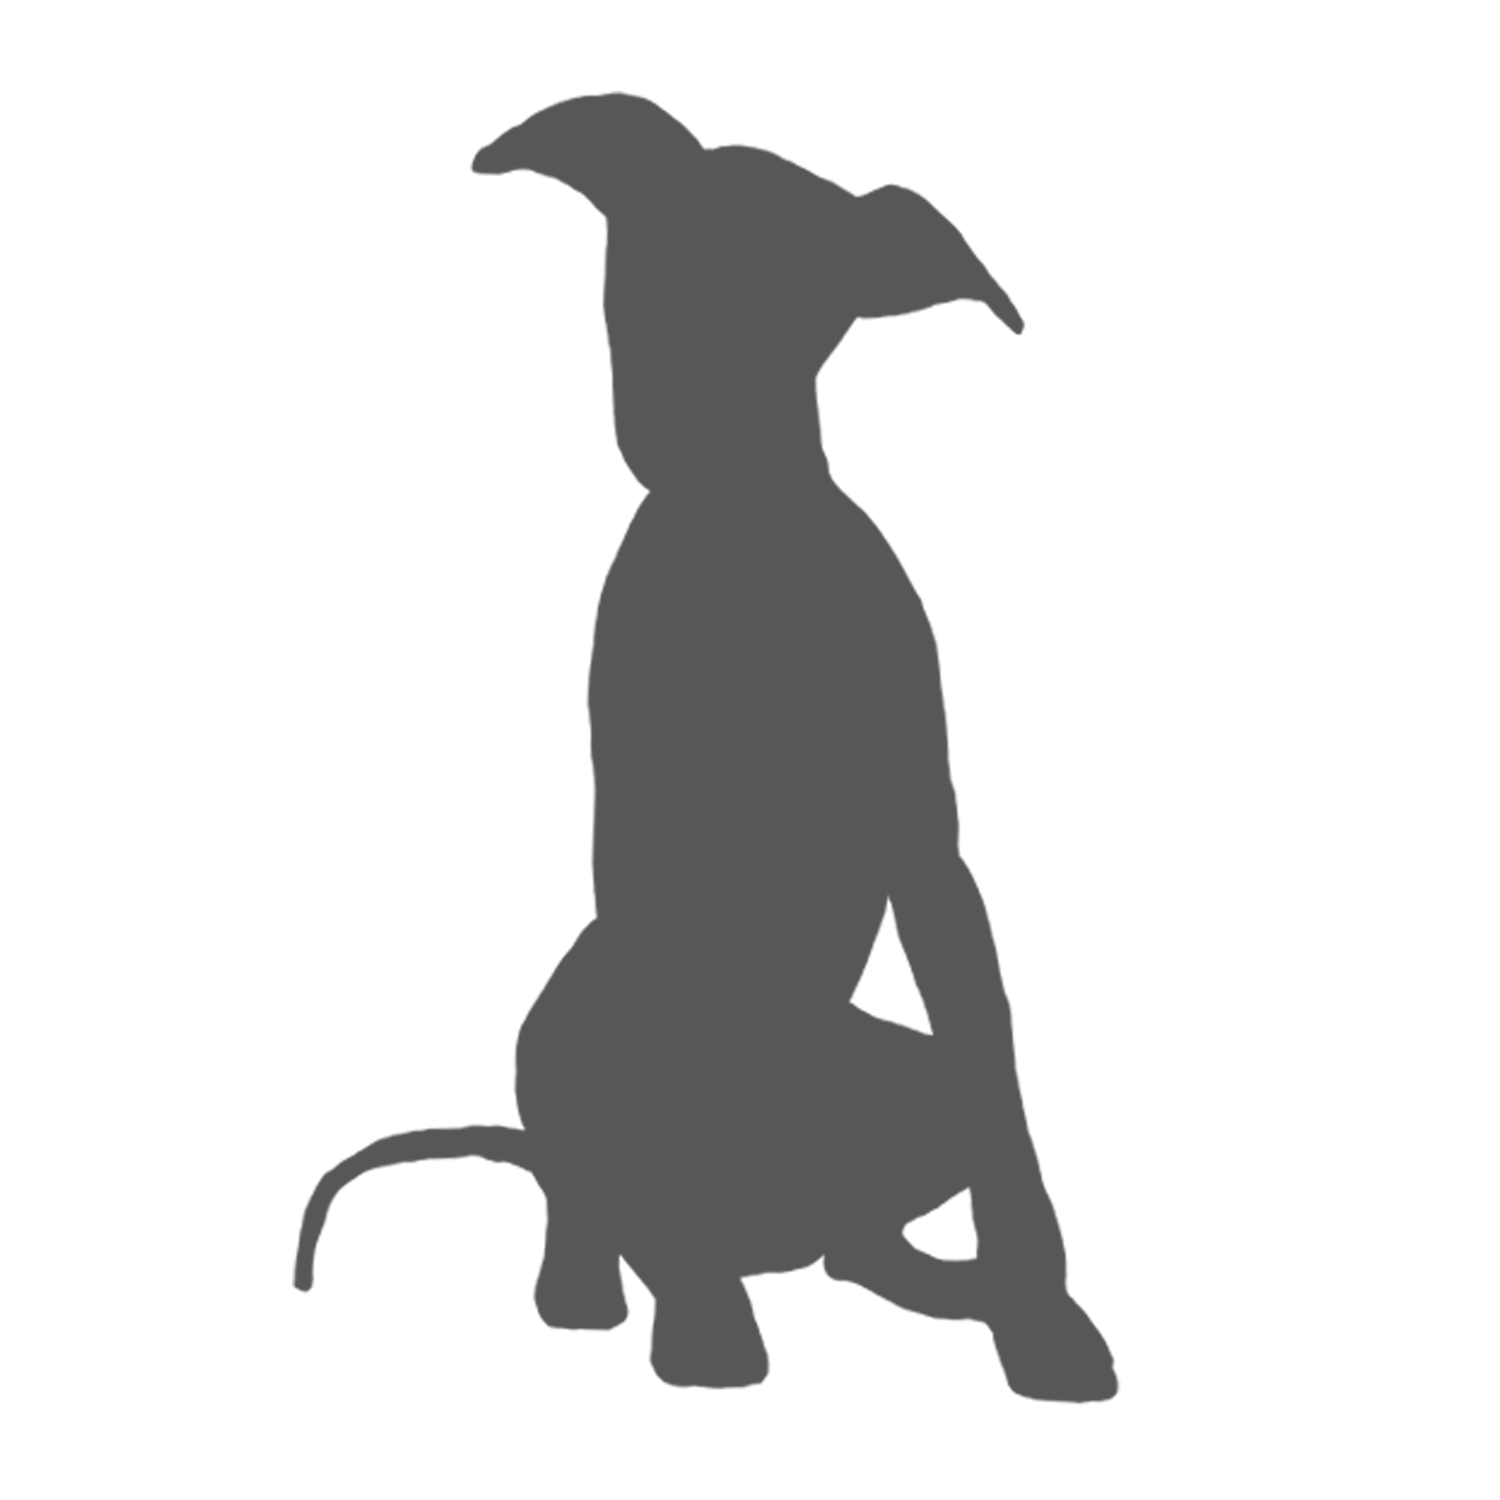 whippet silhouette - Google Search | Whippet life | Pinterest ...